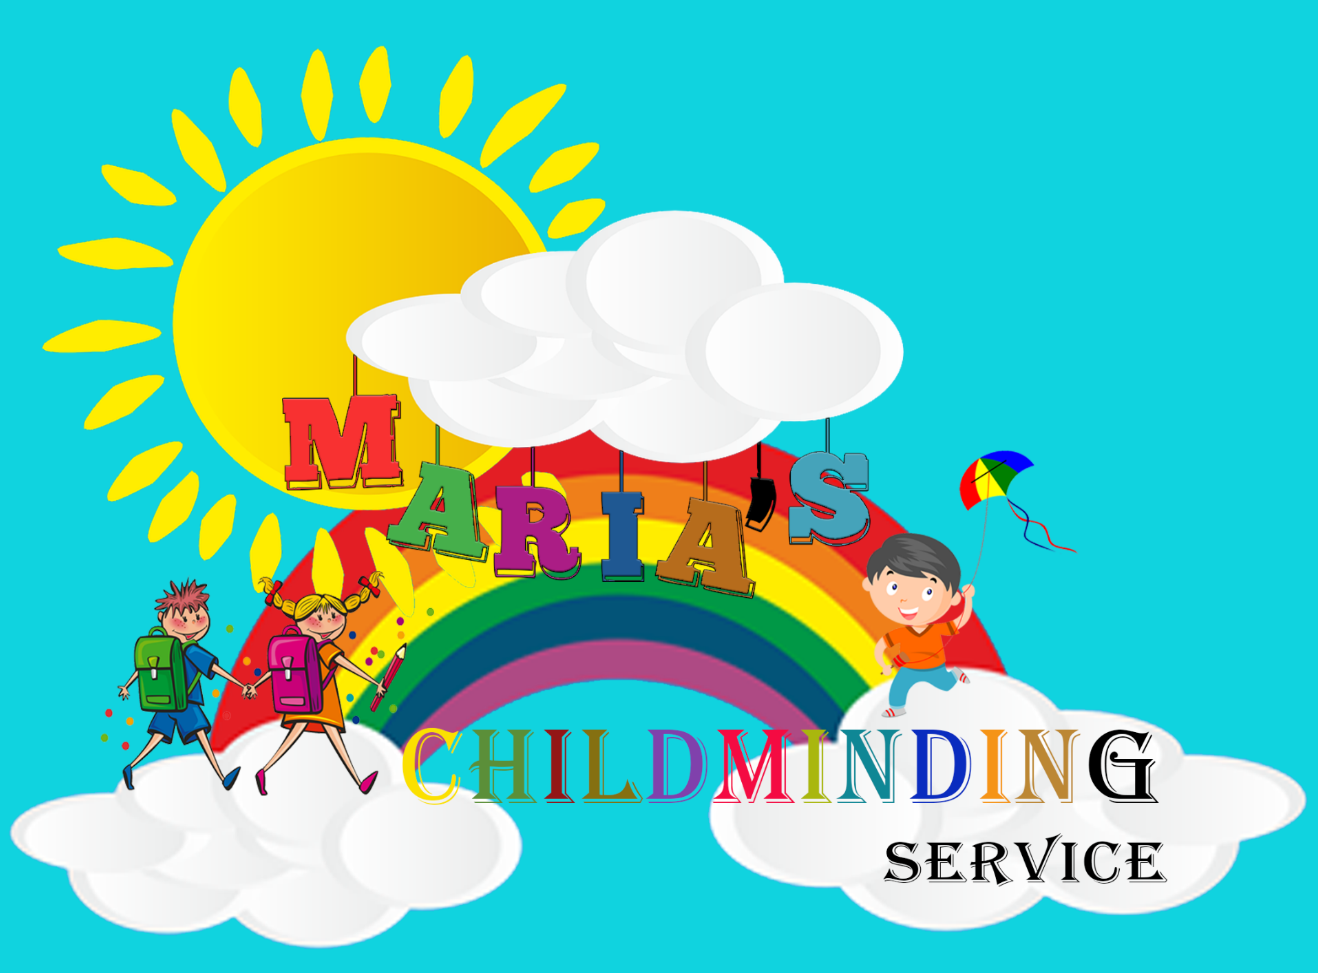 Maria Childminding Service  - Maria Childminding Service - Home